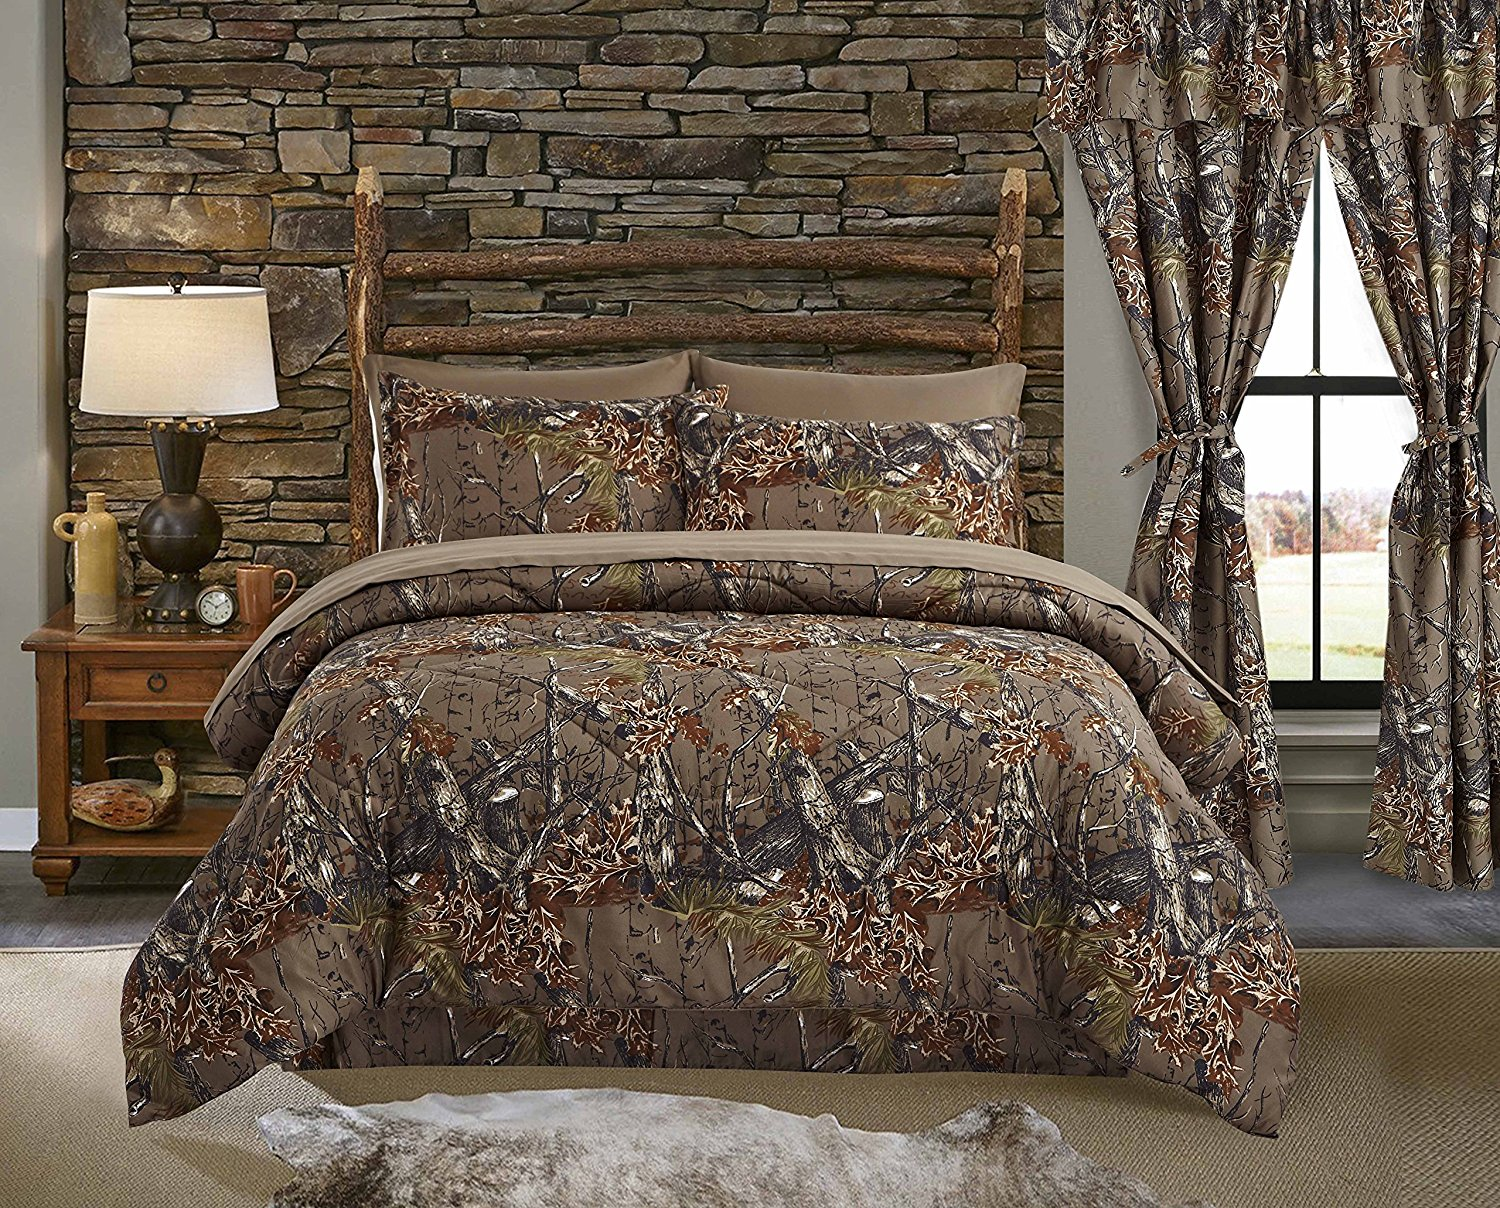 7 PC QUEEN SIZE  WOODS NATURAL CAMO COMFORTER AND BIO GREEN SHEET SET CAMOUFLAGE